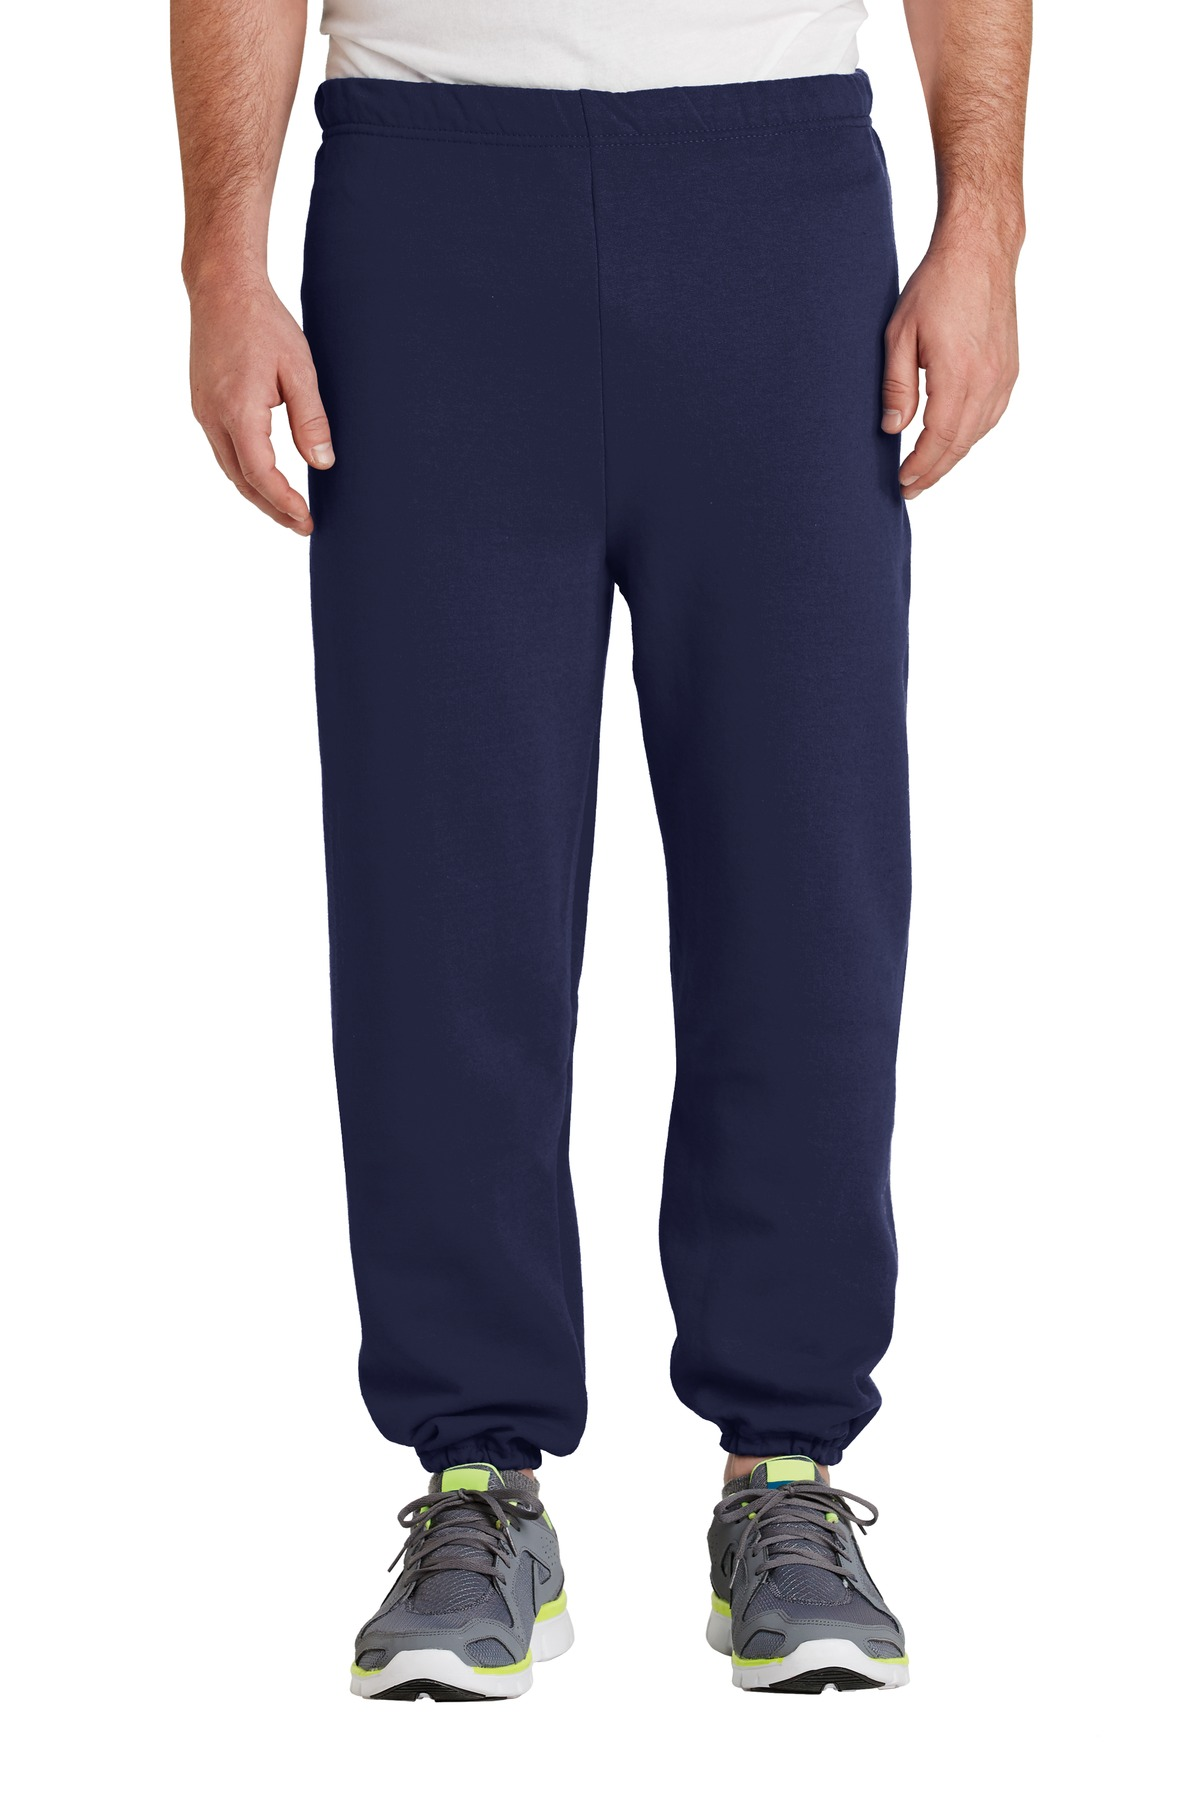 JERZEES ®  - NuBlend ®  Sweatpant.  973M - Navy